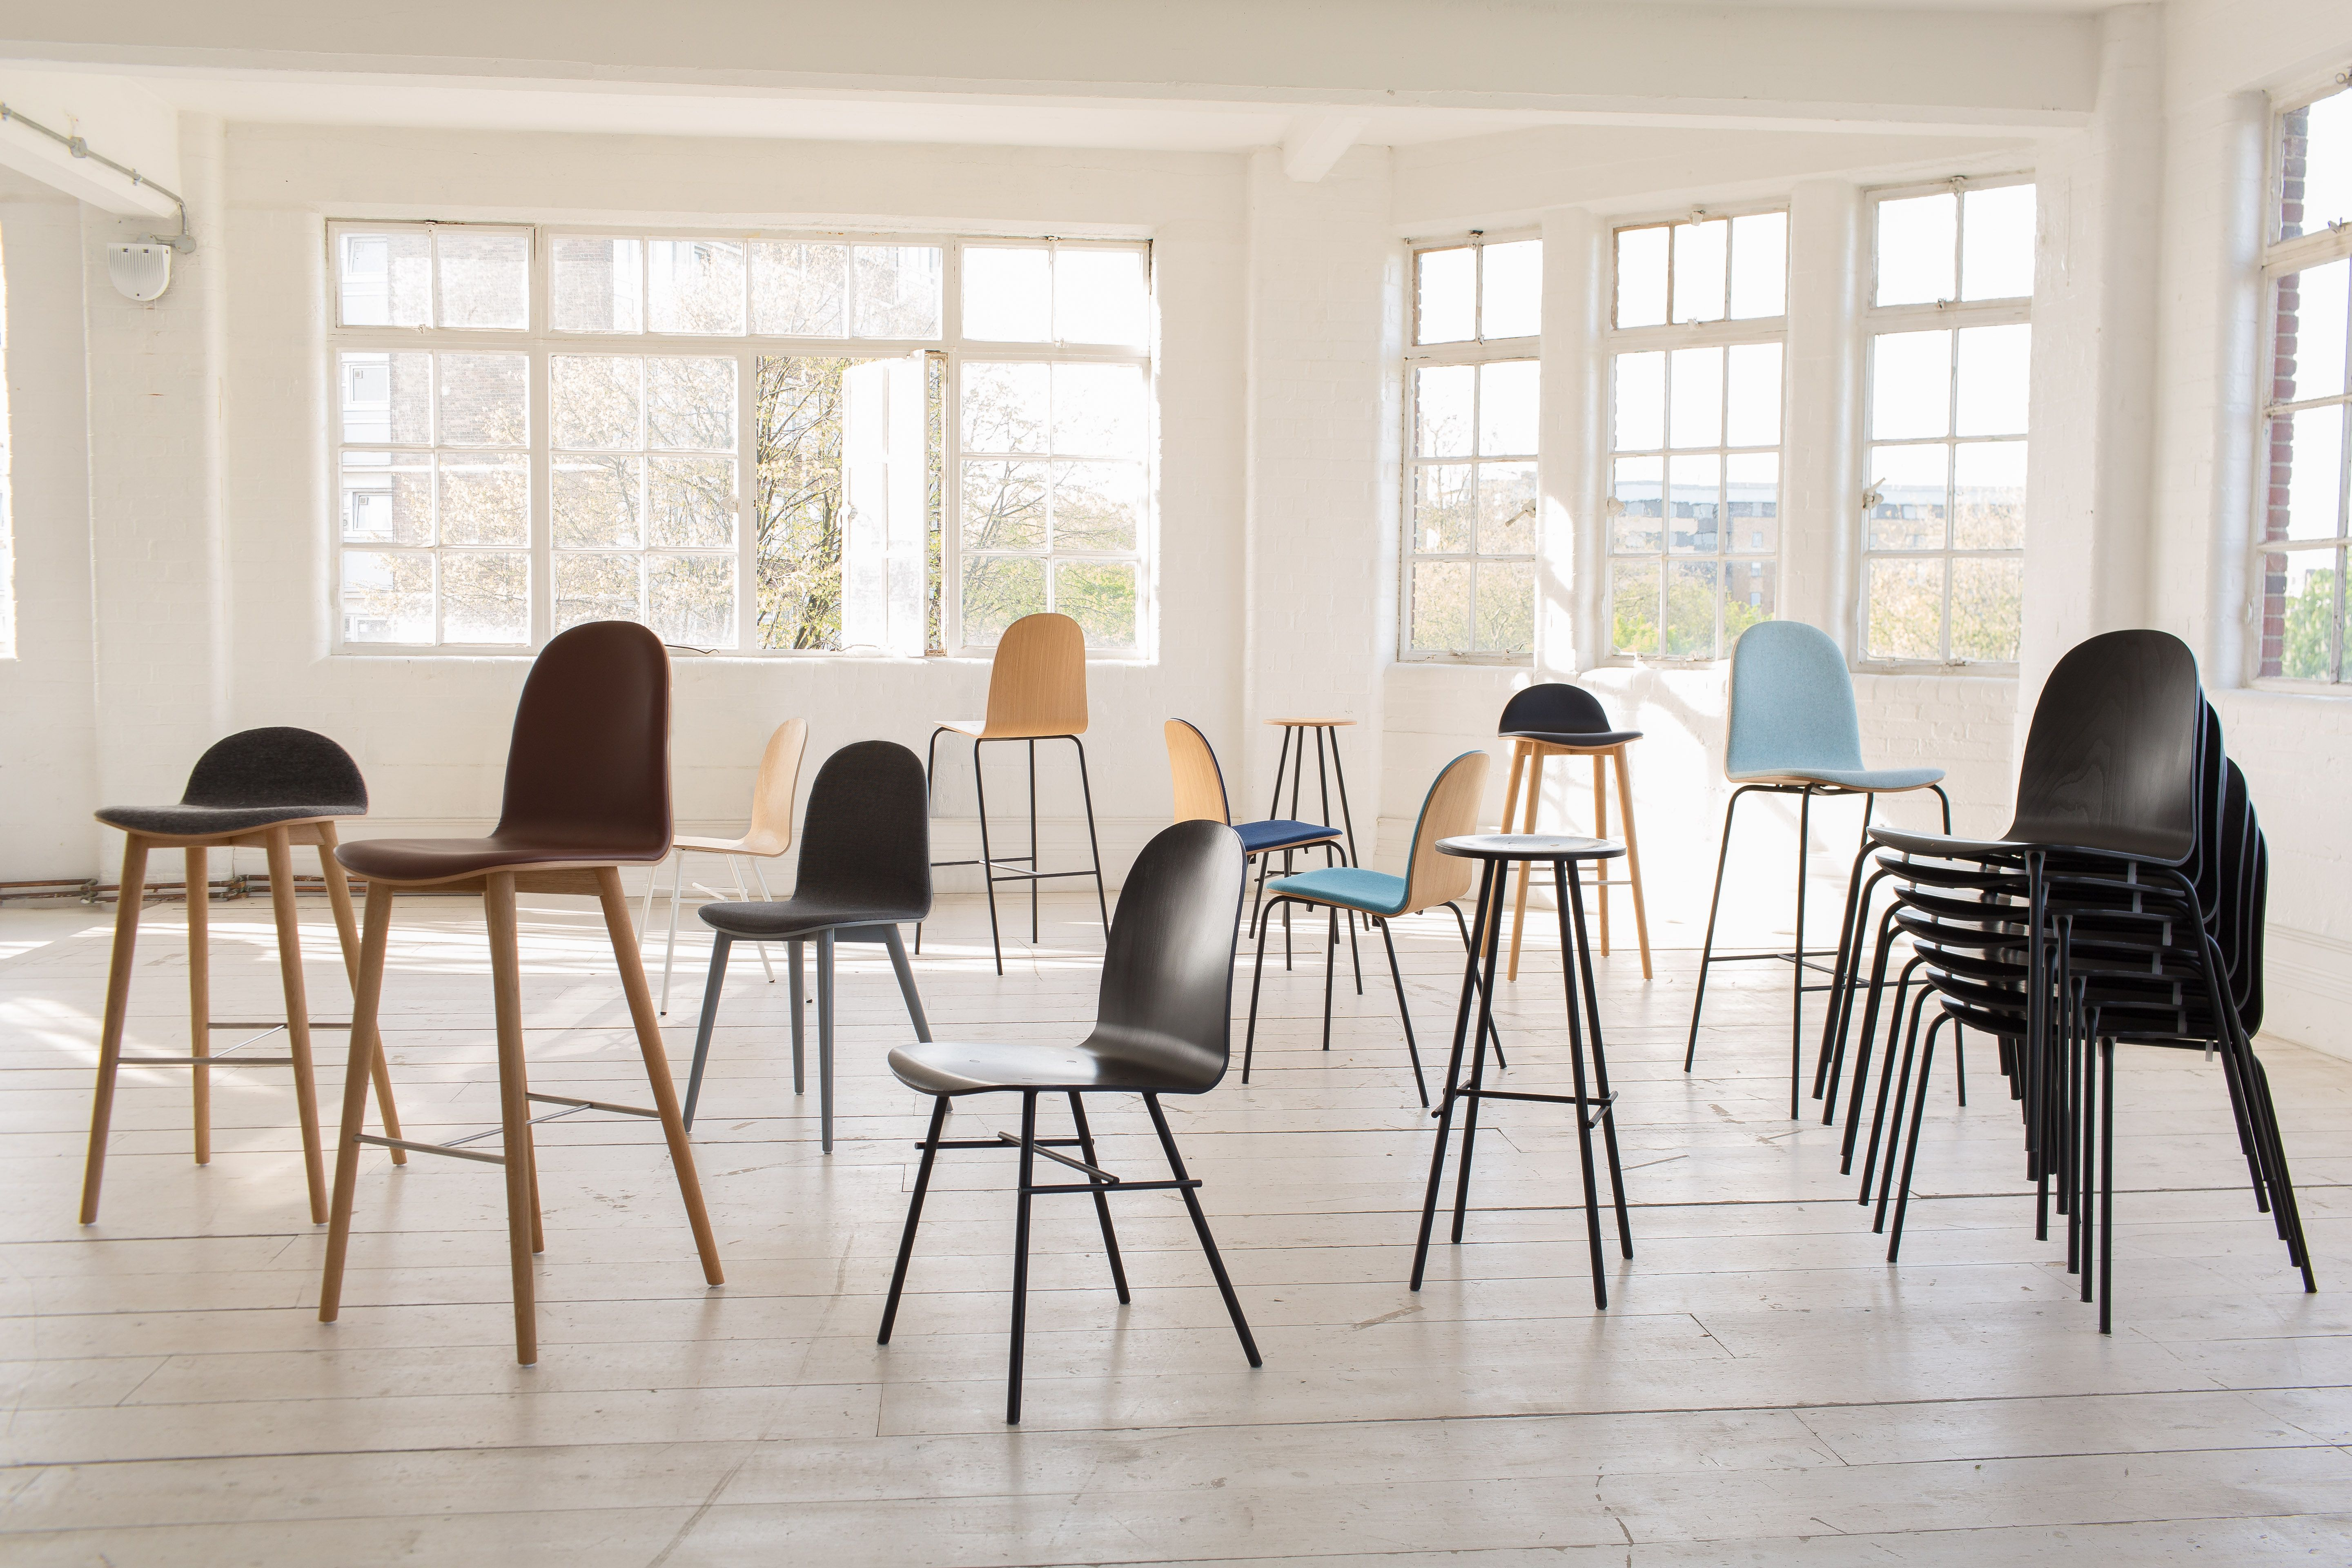 J48 FDB Chair by Poul Volther for Kvist Industries J46 FDB Chair by Poul Volther for Kvist Industries J67 FDB Chair by Ejvind A Johansson for …